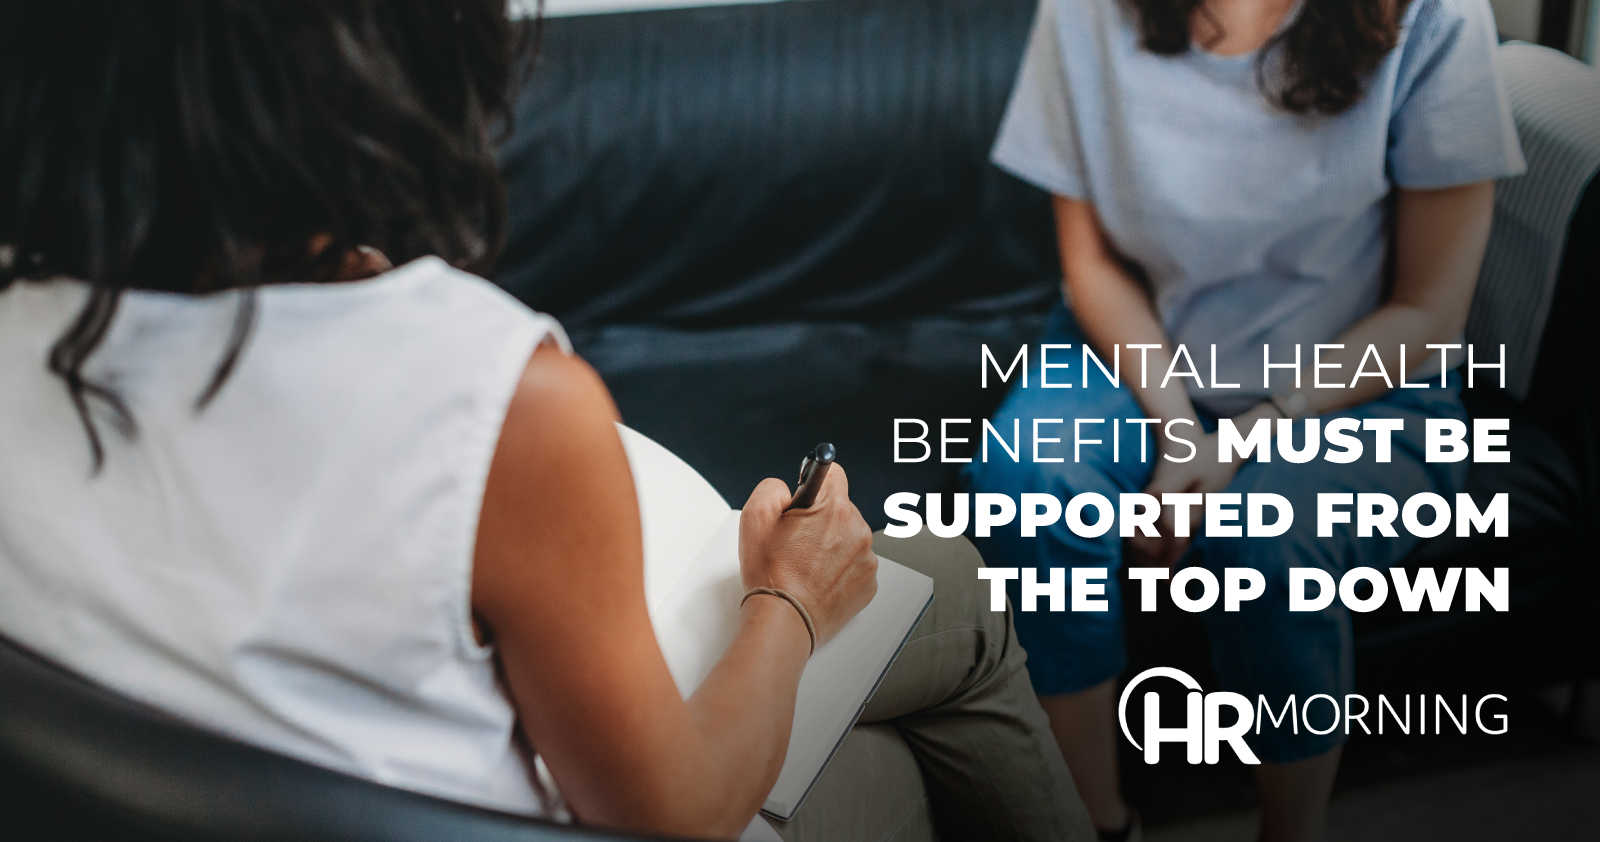 Mental Health Benefits Must Be Supported From The Top Down